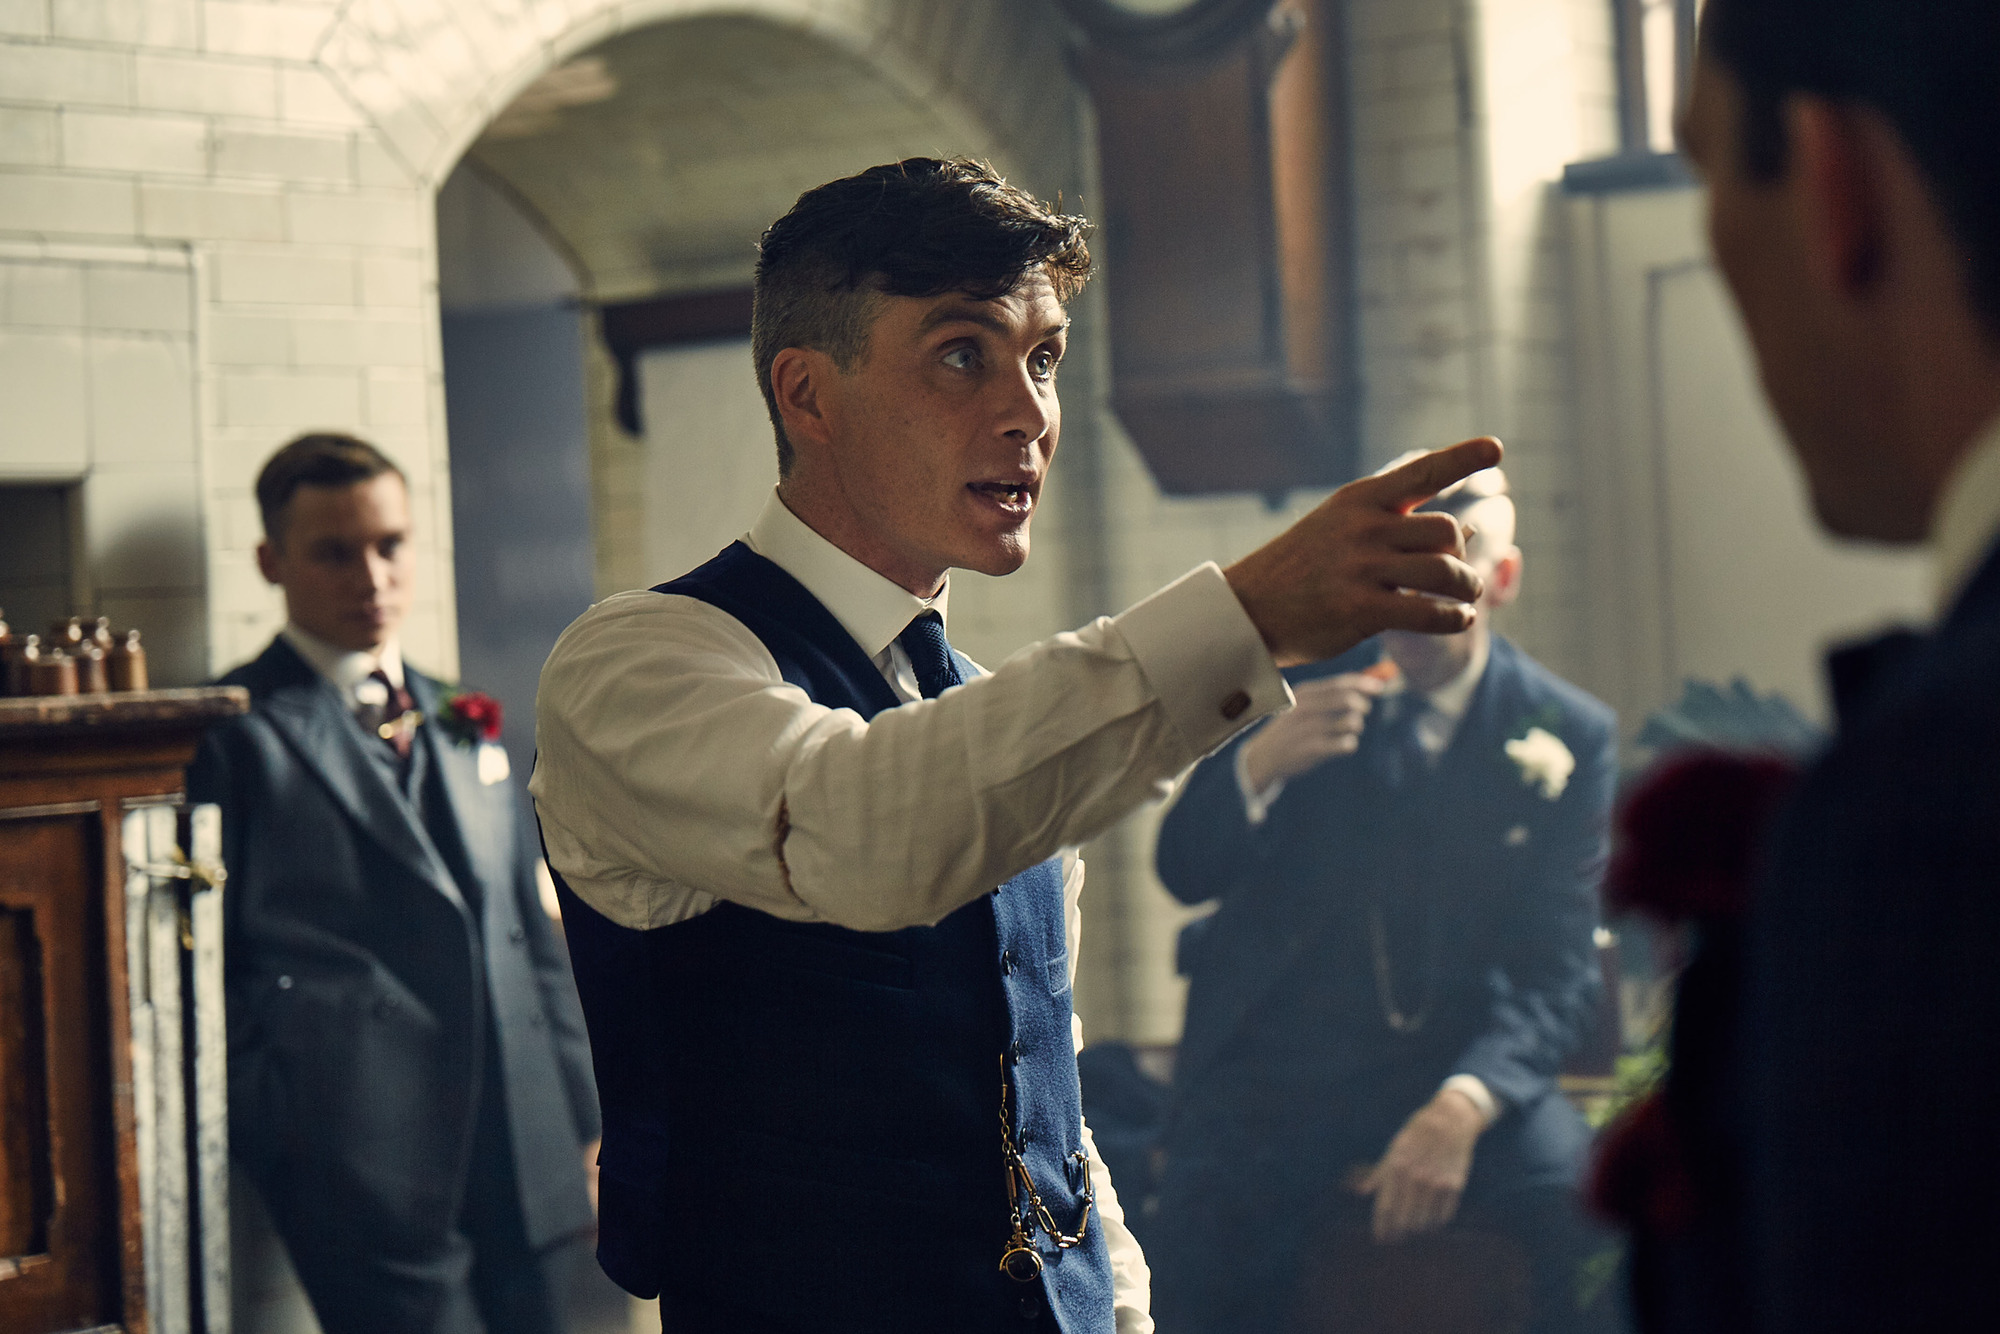 Cillian Murphy doesn't get why people like his Peaky Blinders haircut